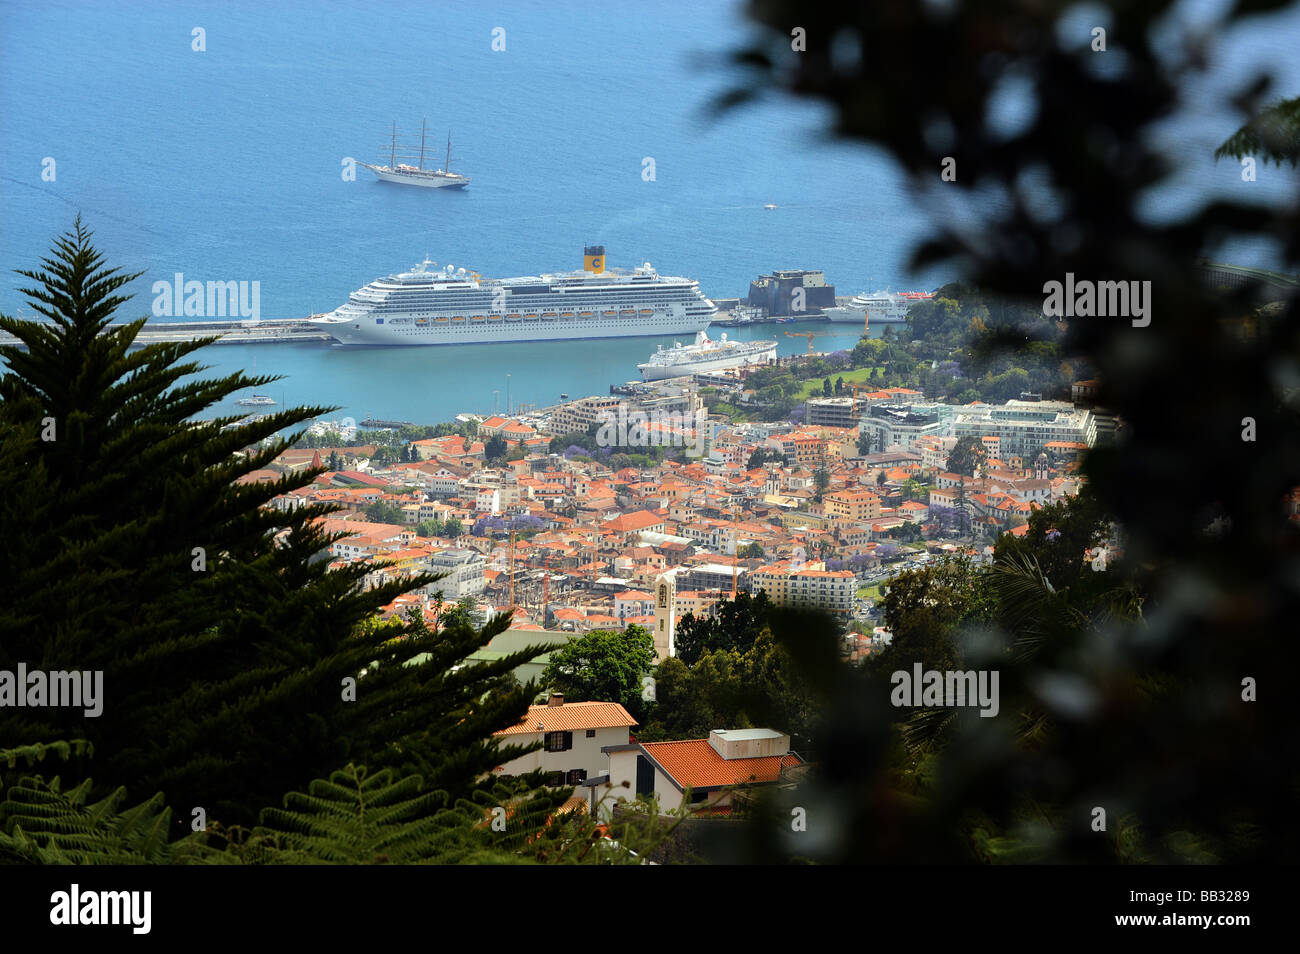 View of the over Funchal, the capital and main port of Madeira. - Stock Image